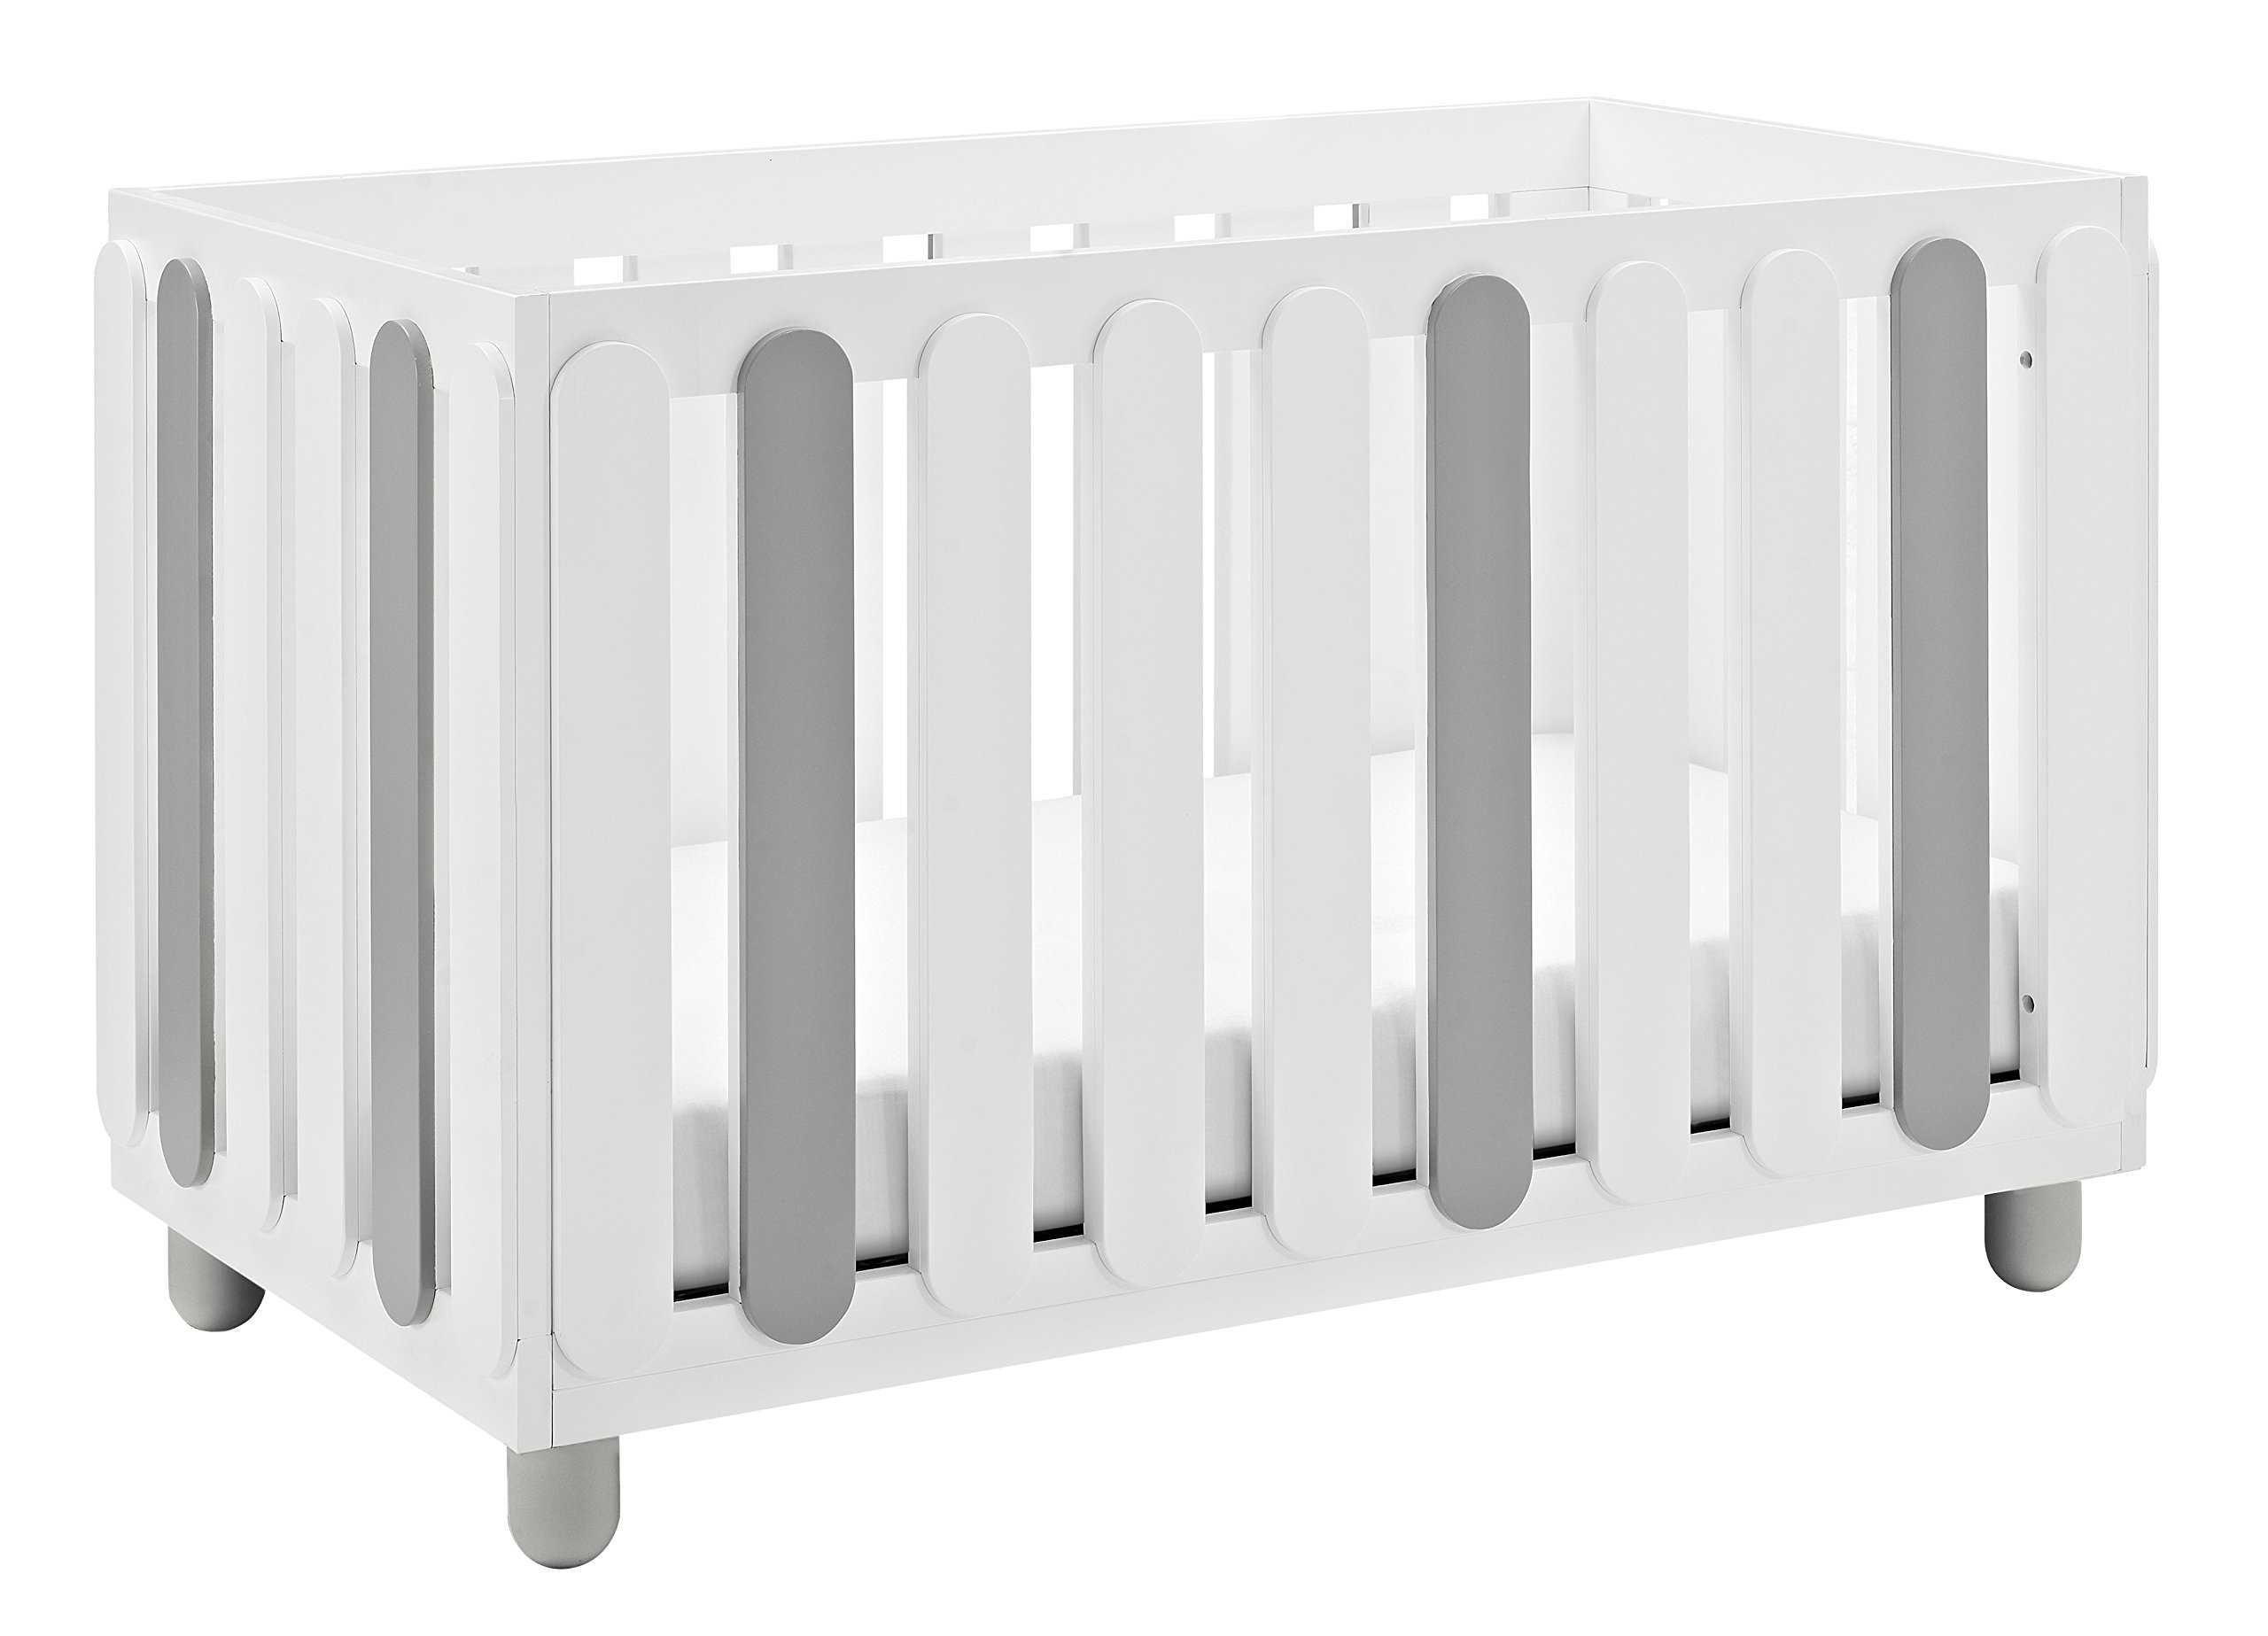 Storkcraft Sienna 3-in-1 Convertible Crib, White/Pebble Gray Easily Converts to Toddler Bed & Day Bed, 3-Position Adjustable Height Mattress by Storkcraft